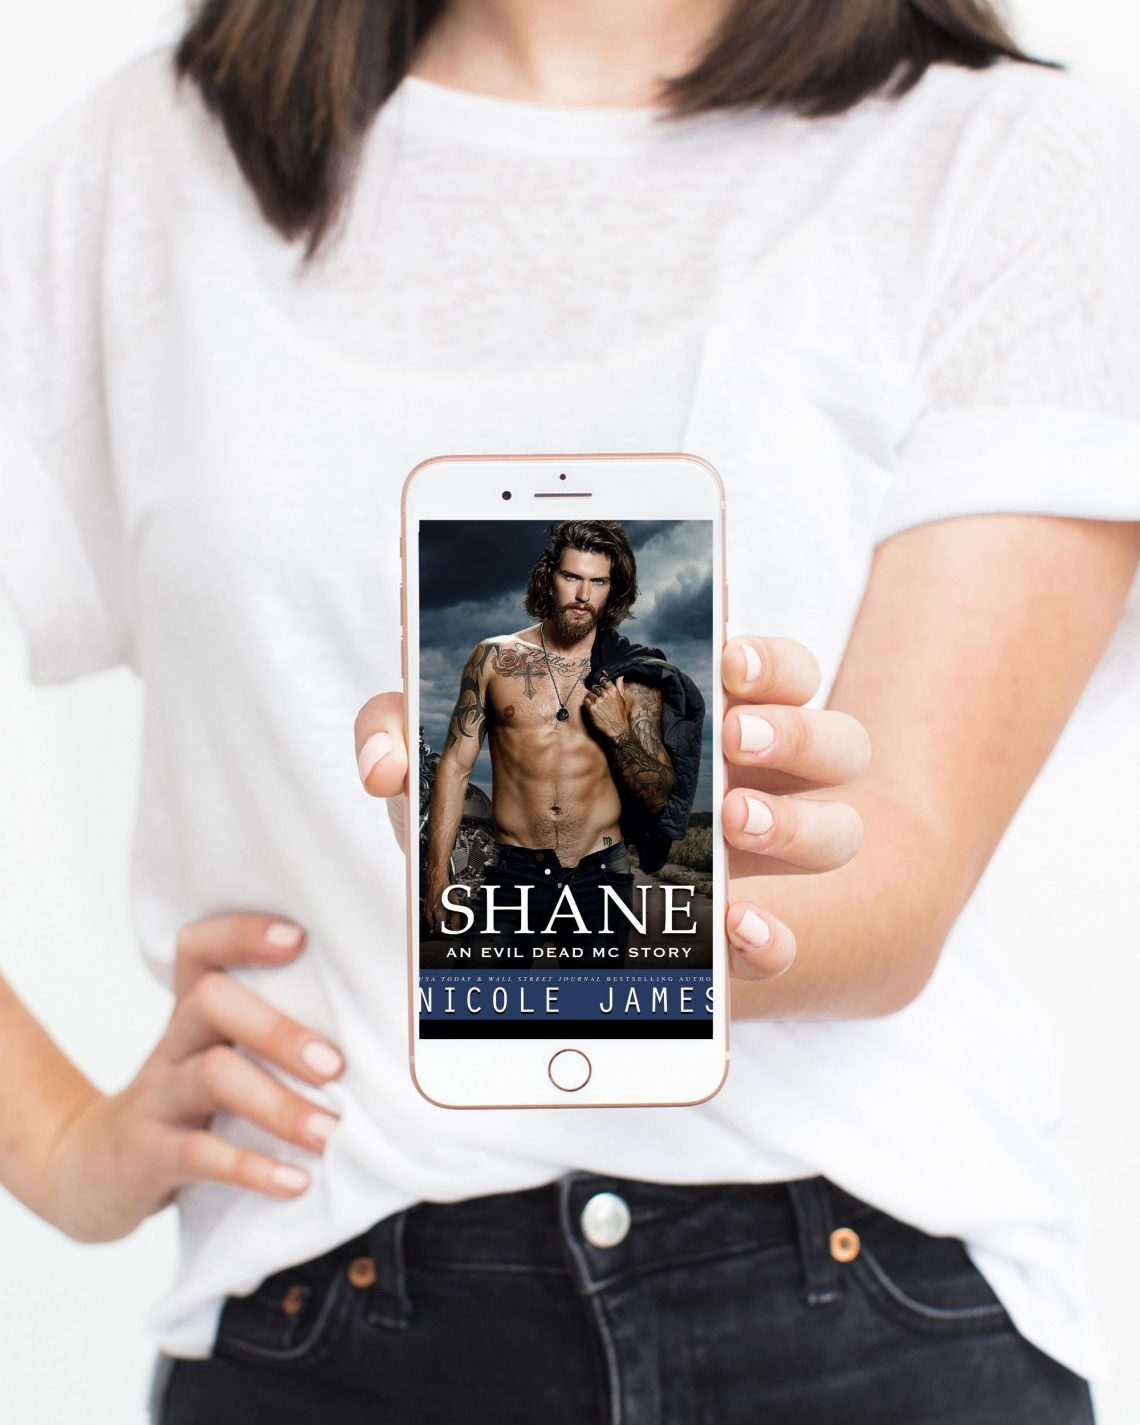 Shane by Nicole James - Wickedly Romance